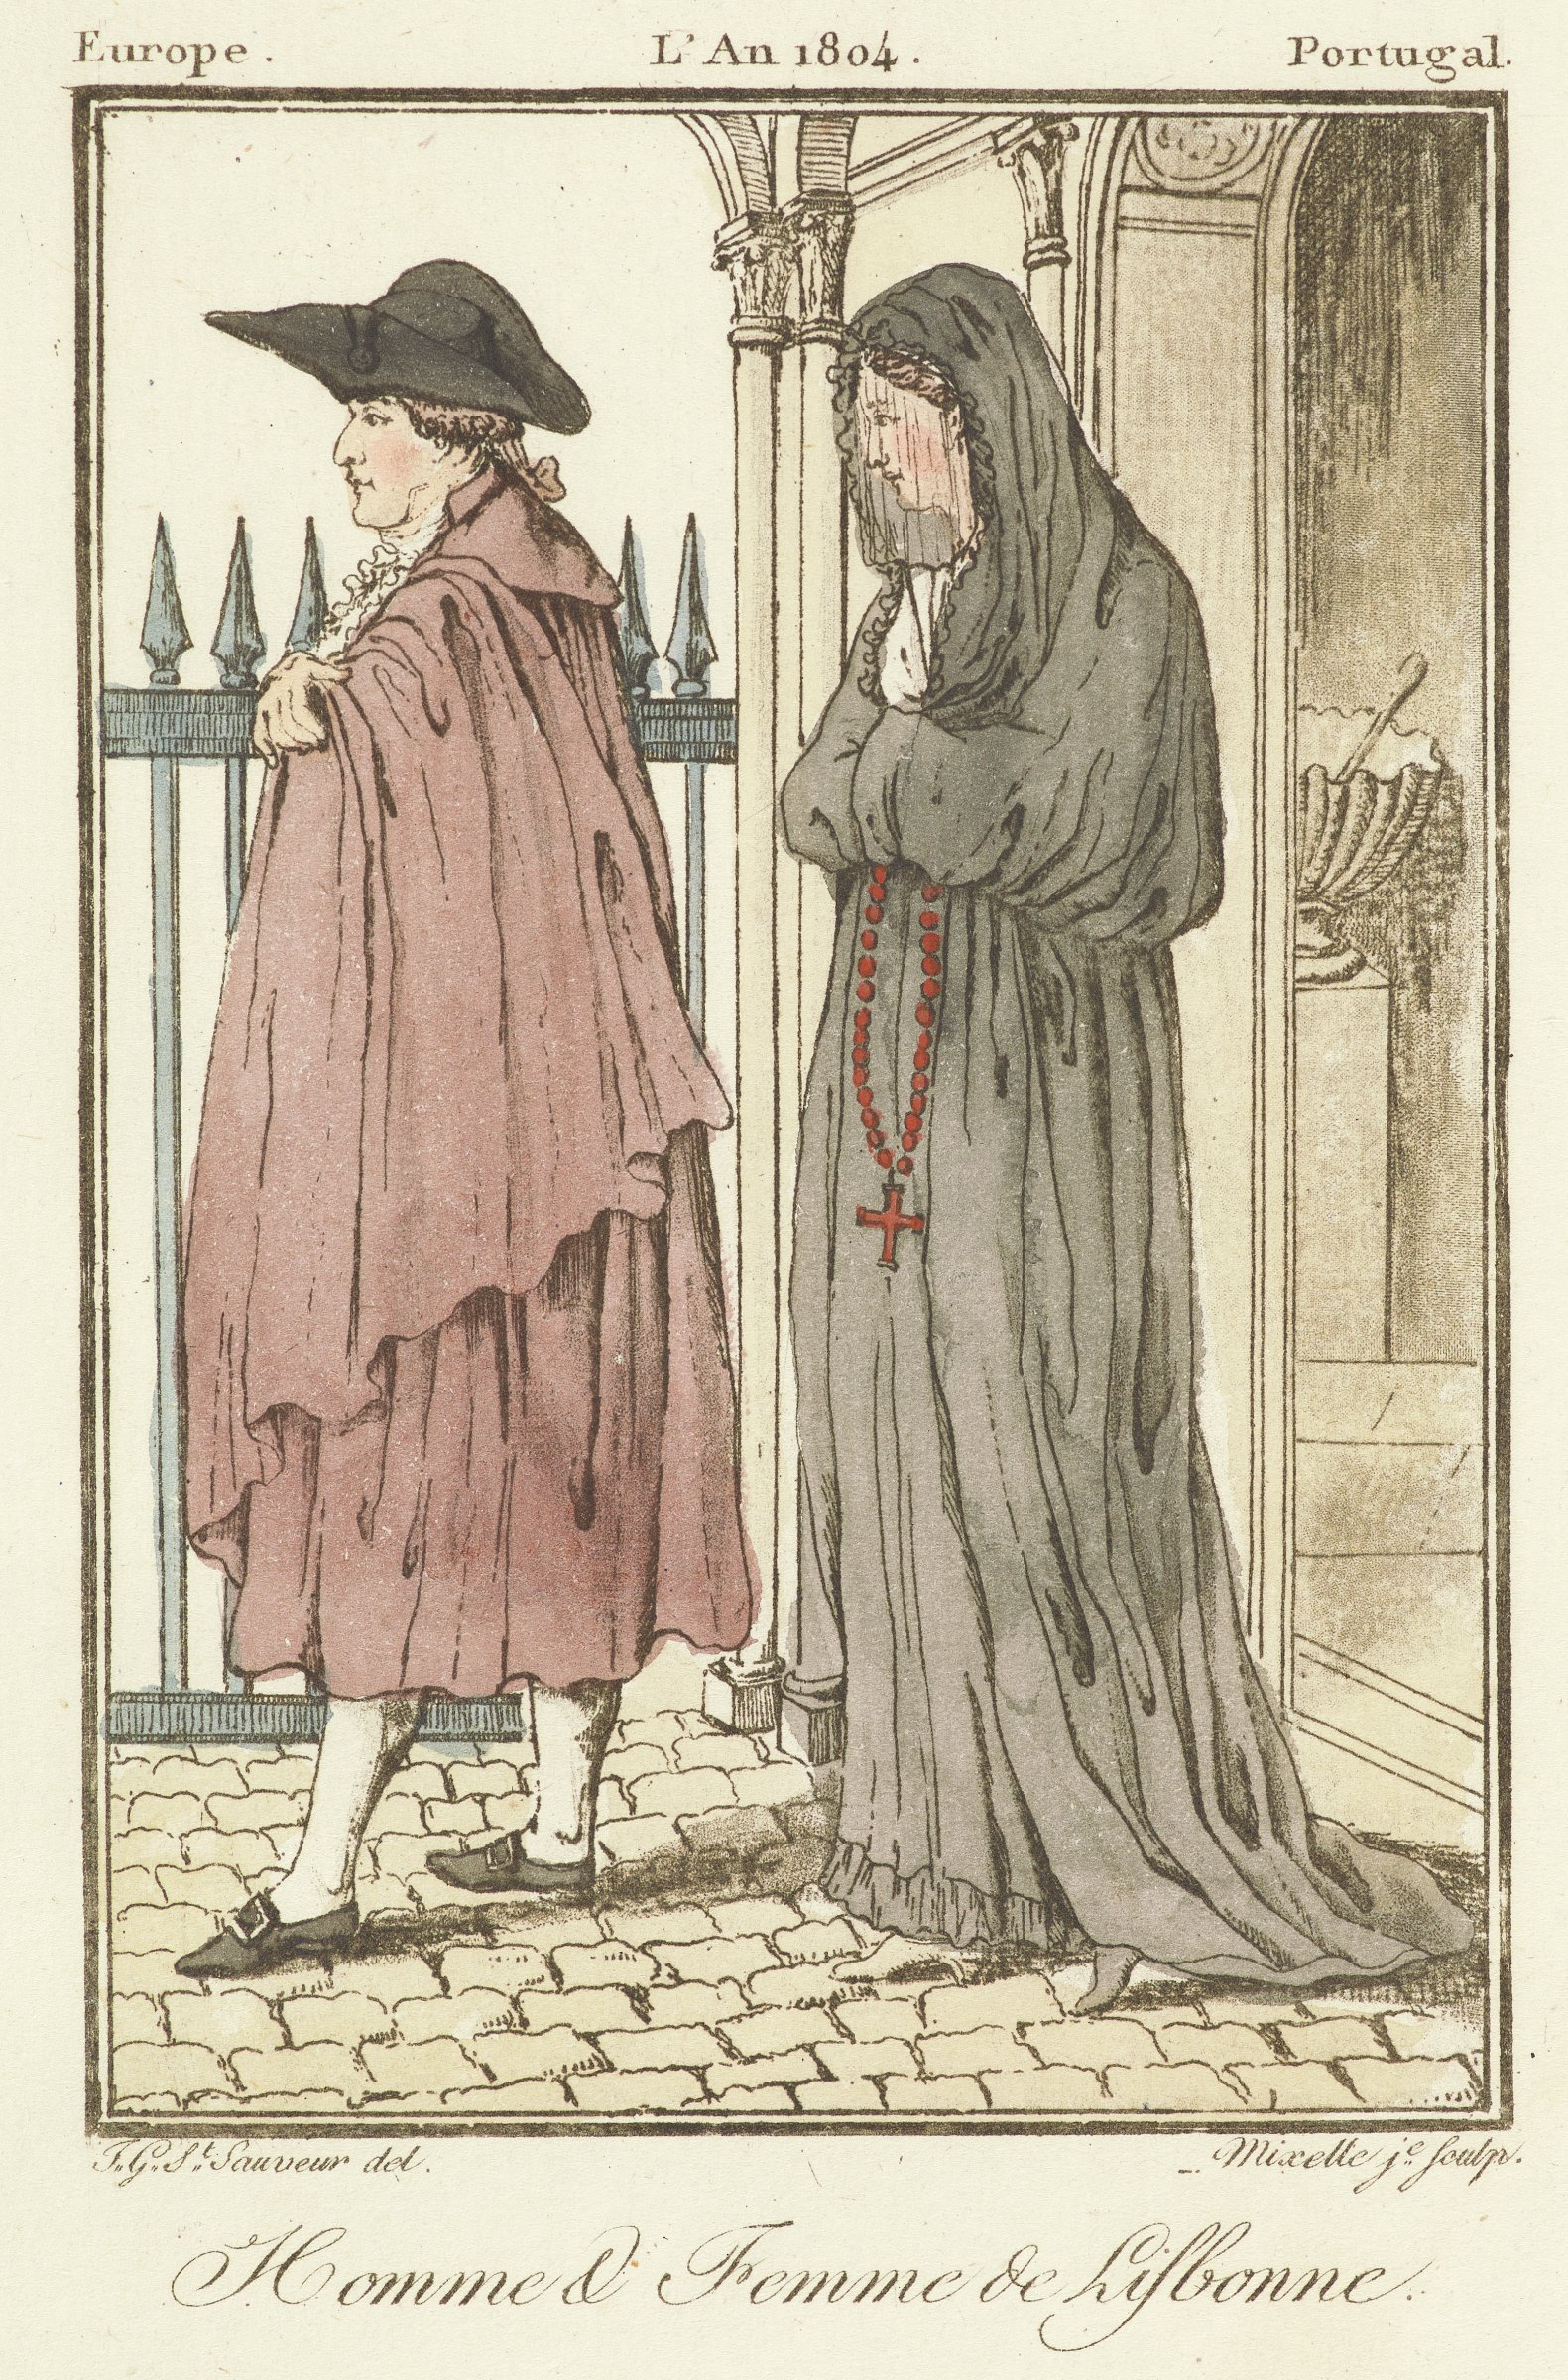 A man and woman are depicted facing left. The man is dressed with a cape and black hat. The woman in dressed in a long dress with loose sleeves. Her face is covered with a veil.